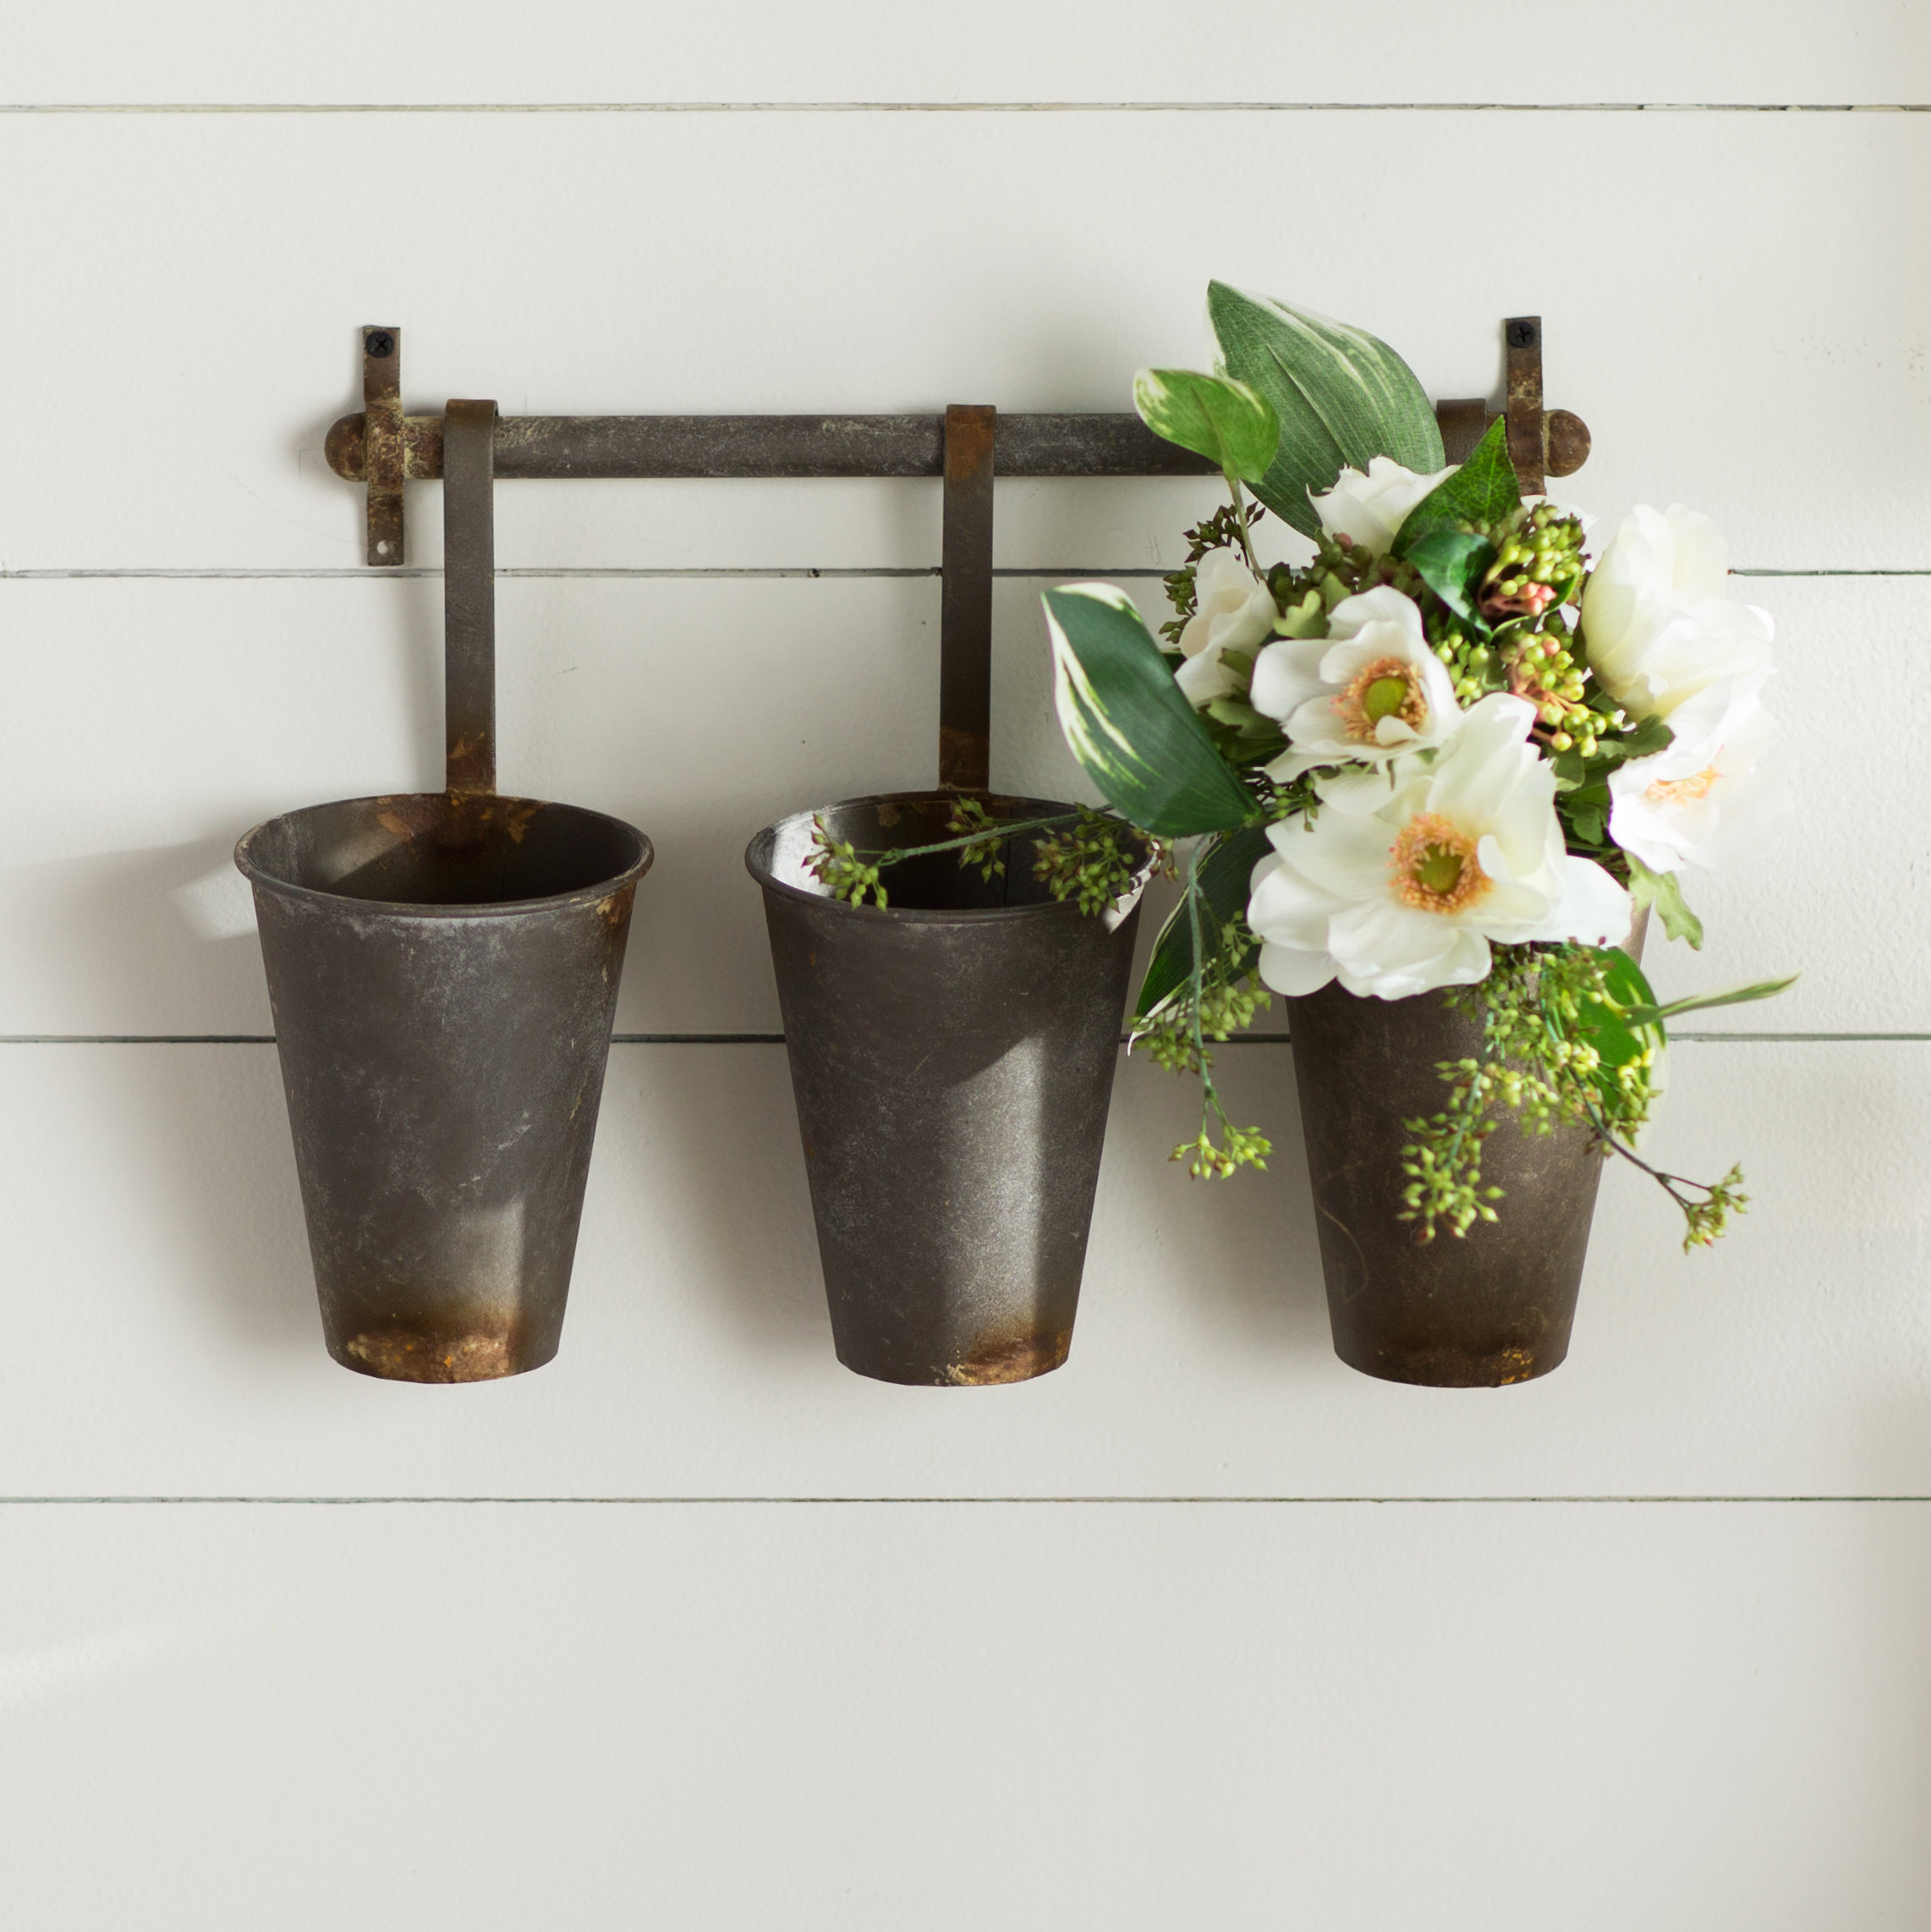 Laurel Foundry Modern Farmhouse Farm Metal Wall Rack And 3 Tin Pot within Trendy Farm Metal Wall Rack And 3 Tin Pot With Hanger Wall Decor